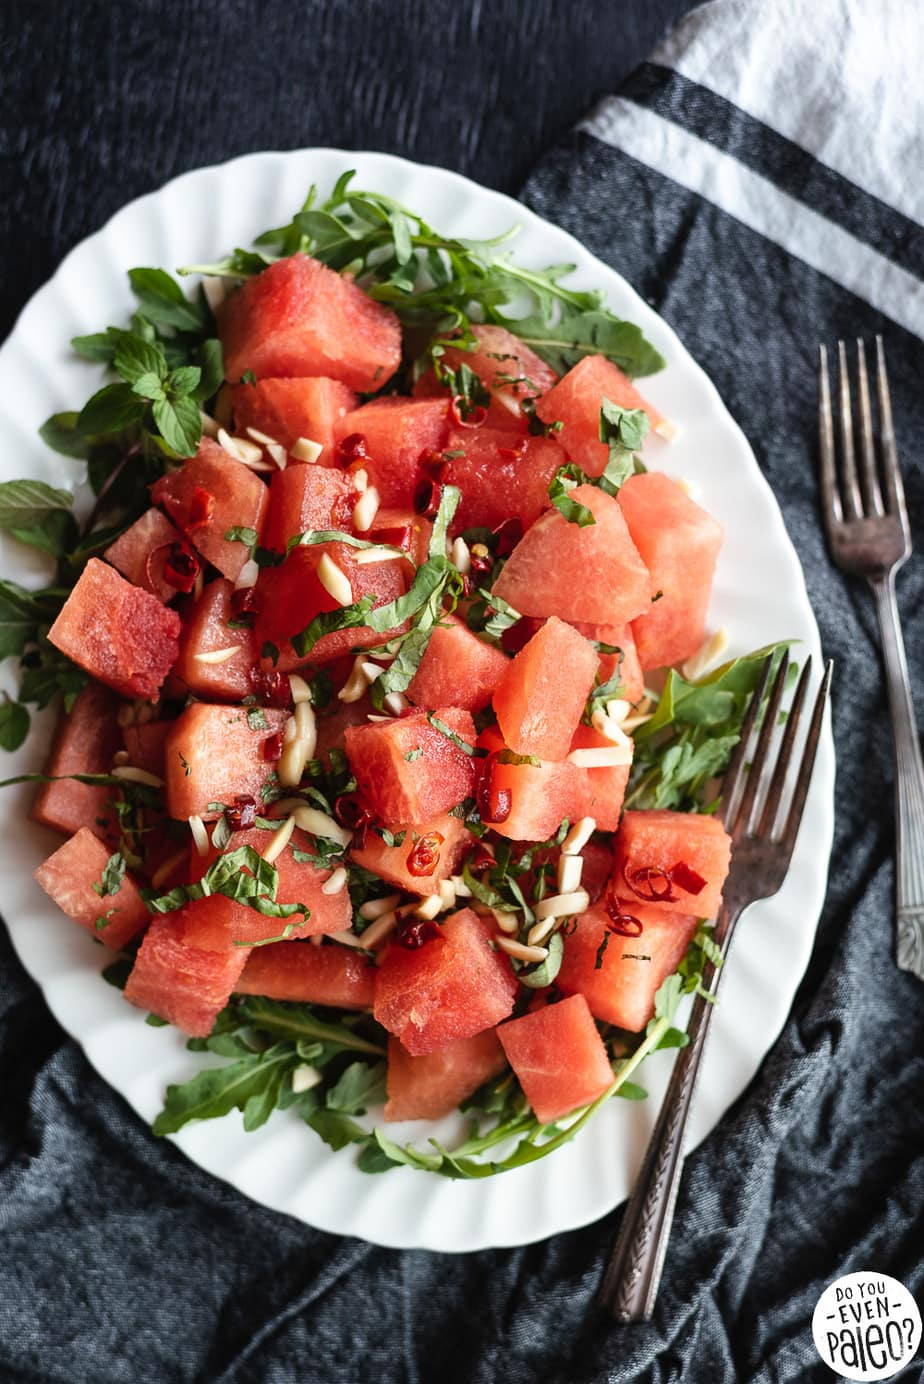 Watermelon Arugula Salad garnished with herbs and almonds on a white oval plate with two forks on a dark background.